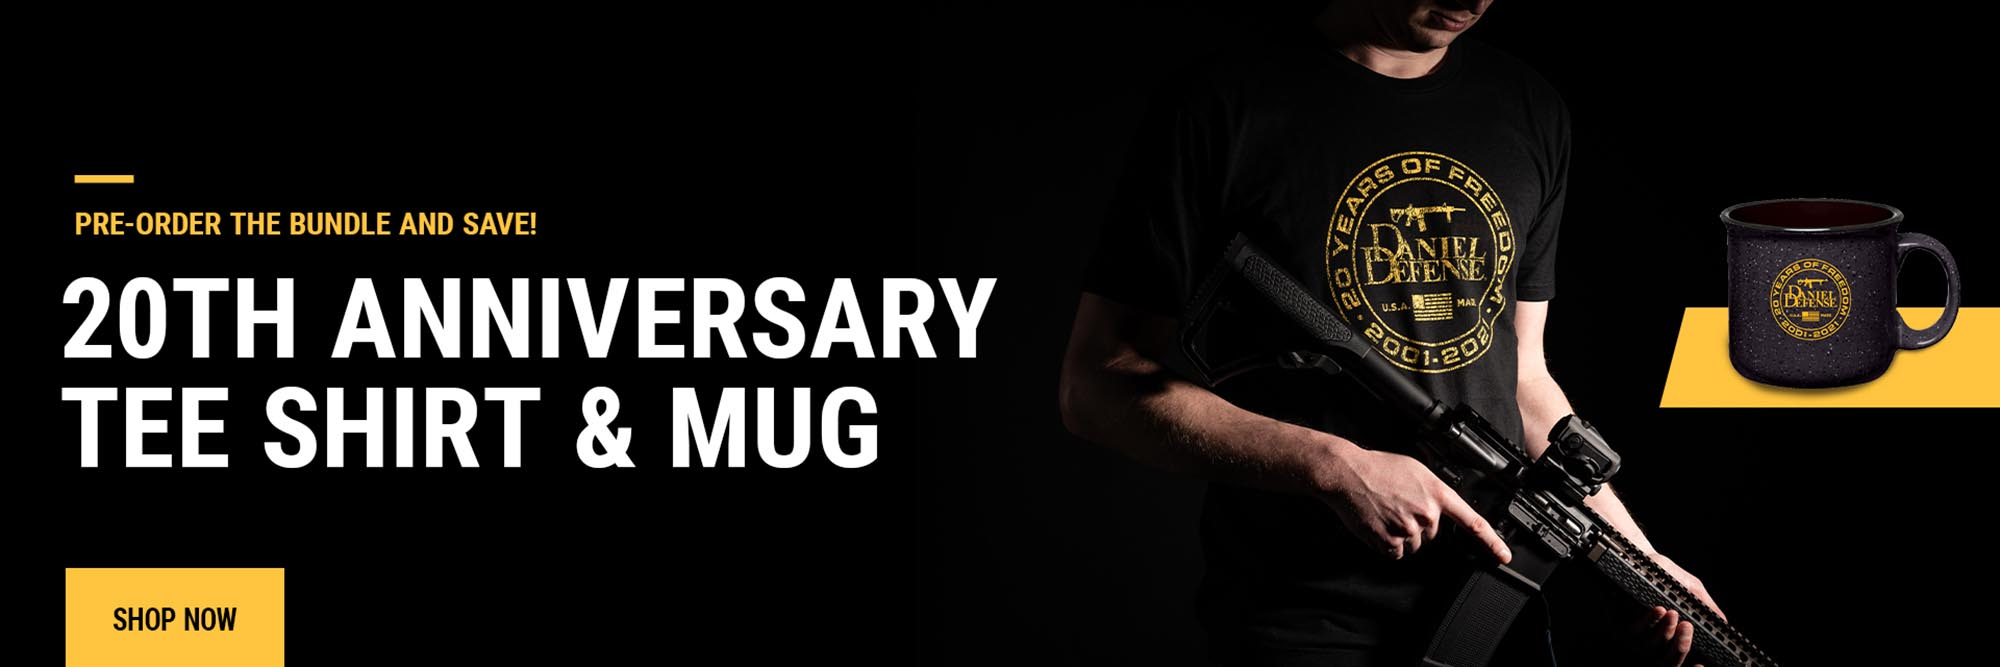 Pre-order the 20th anniversary tee shirt & mug bundle